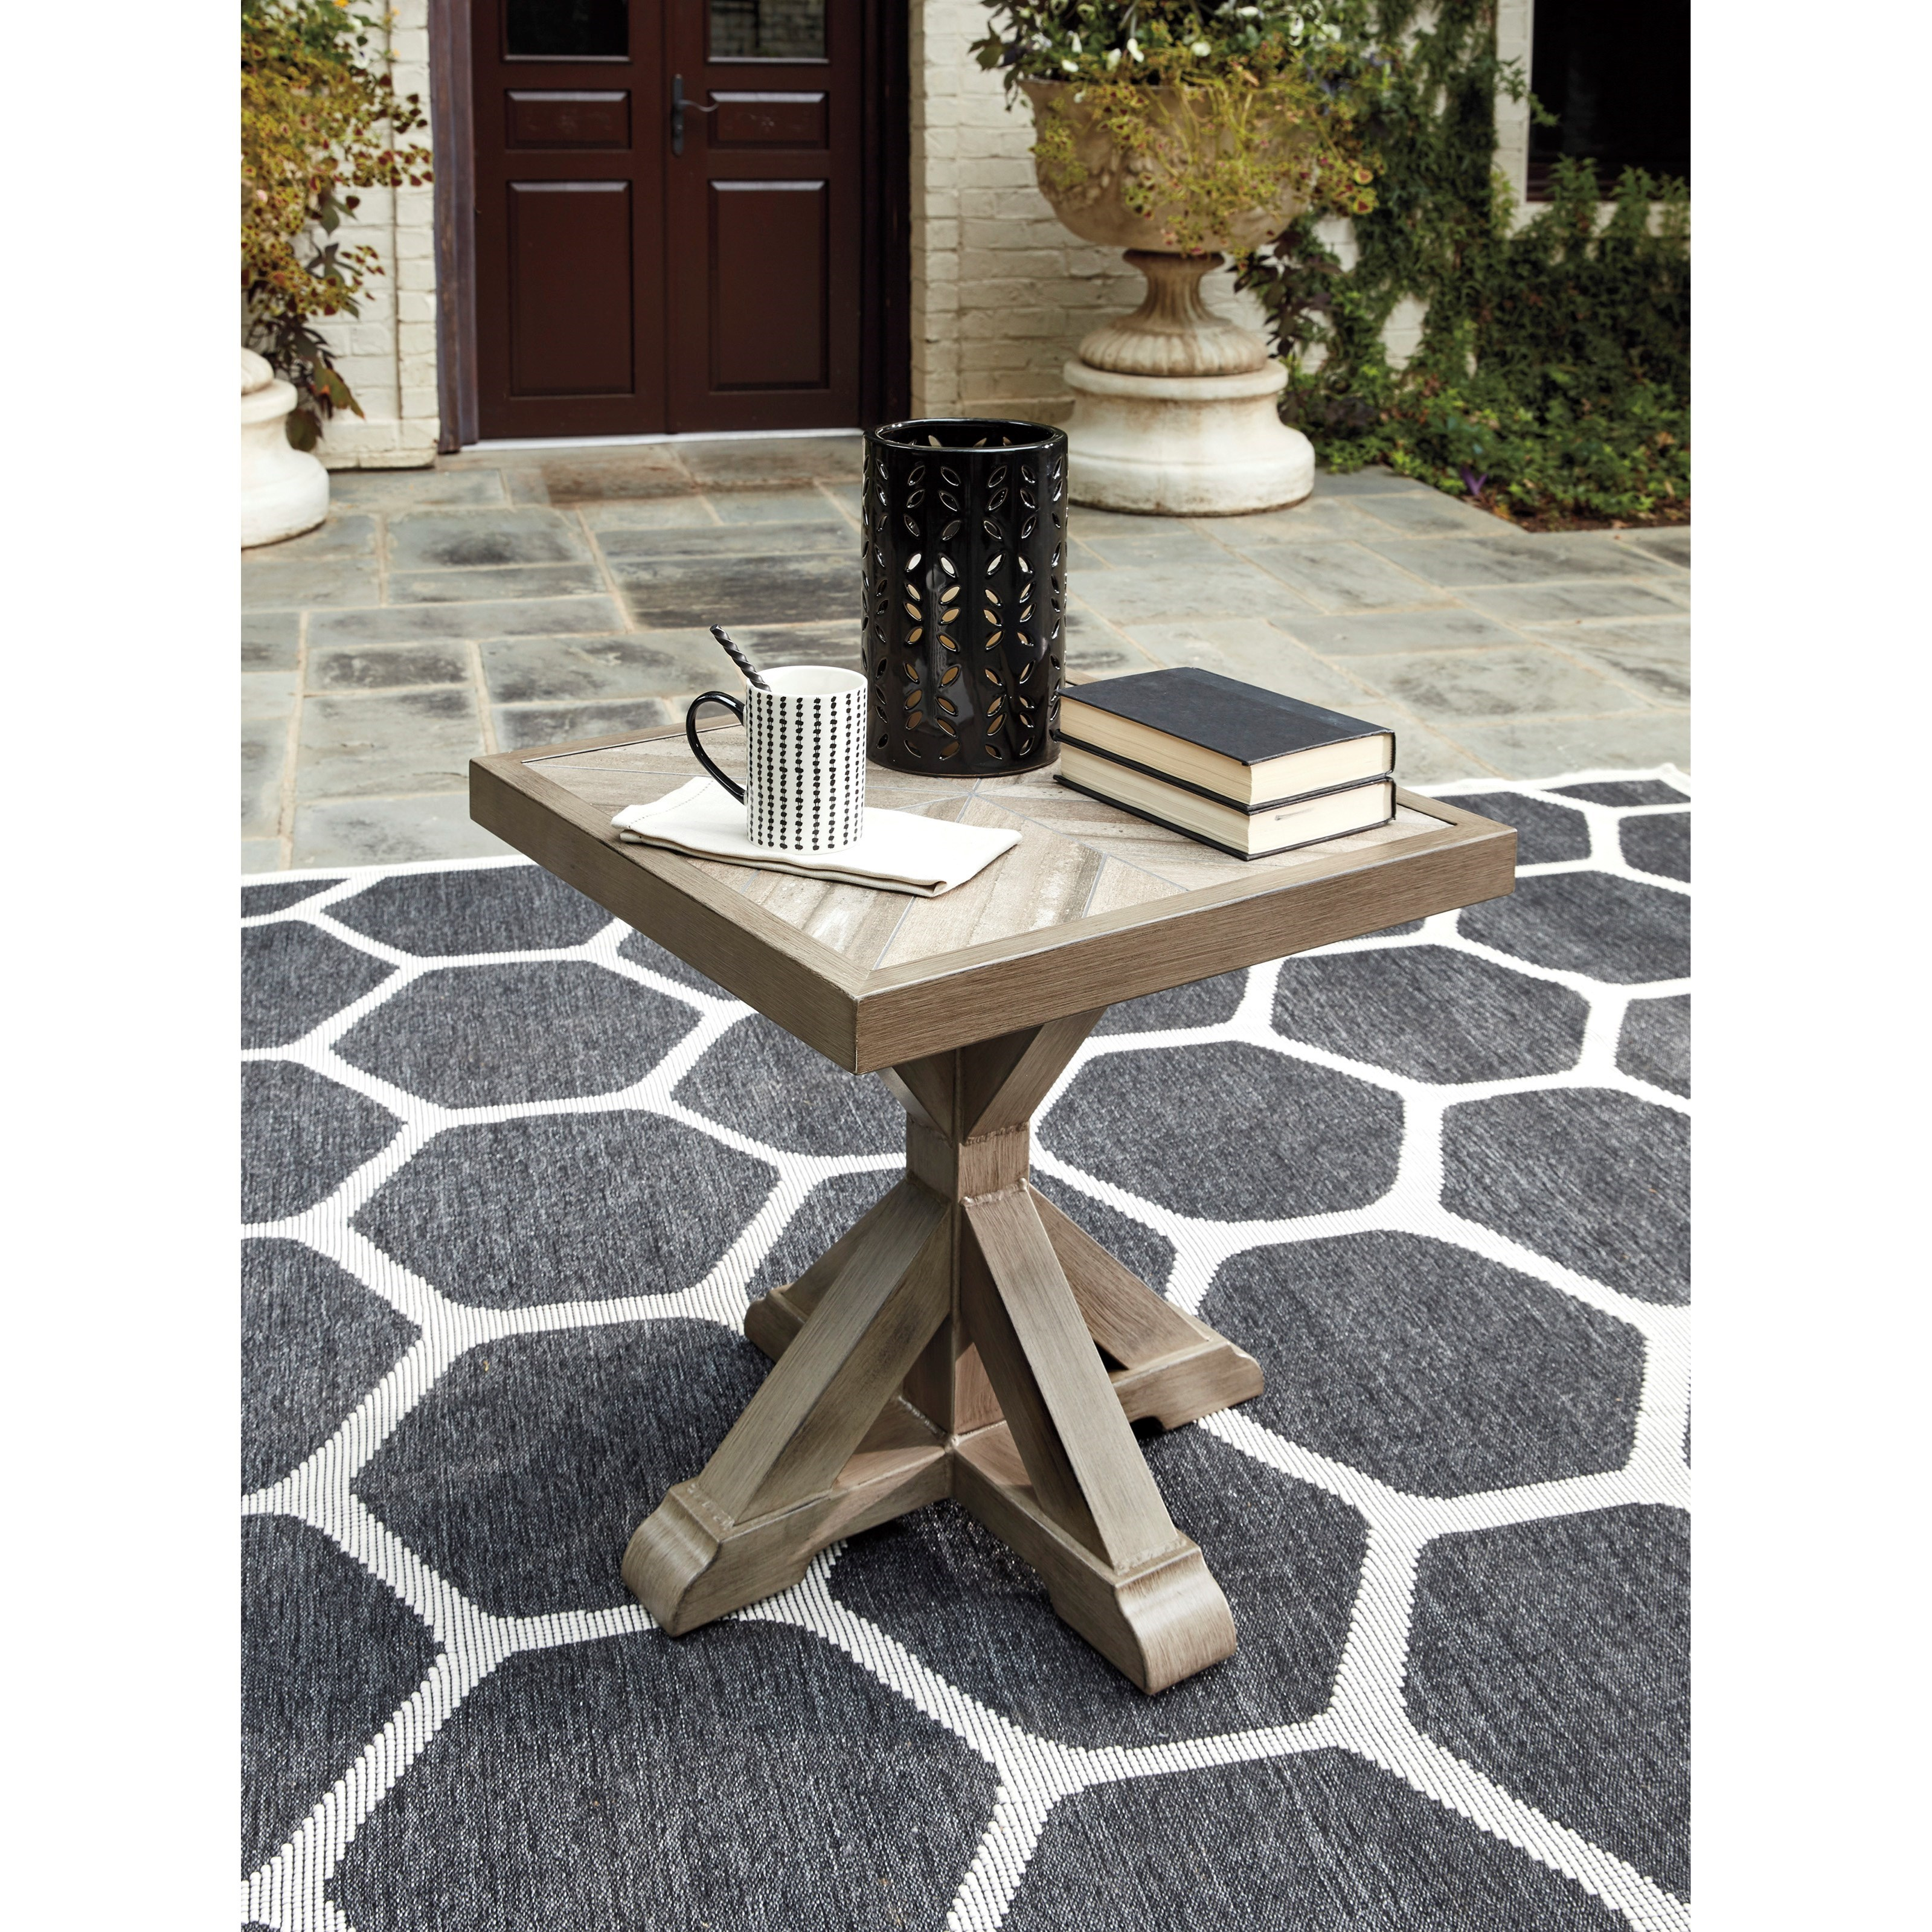 Beachcroft Square End Table by Signature Design by Ashley at Lapeer Furniture & Mattress Center